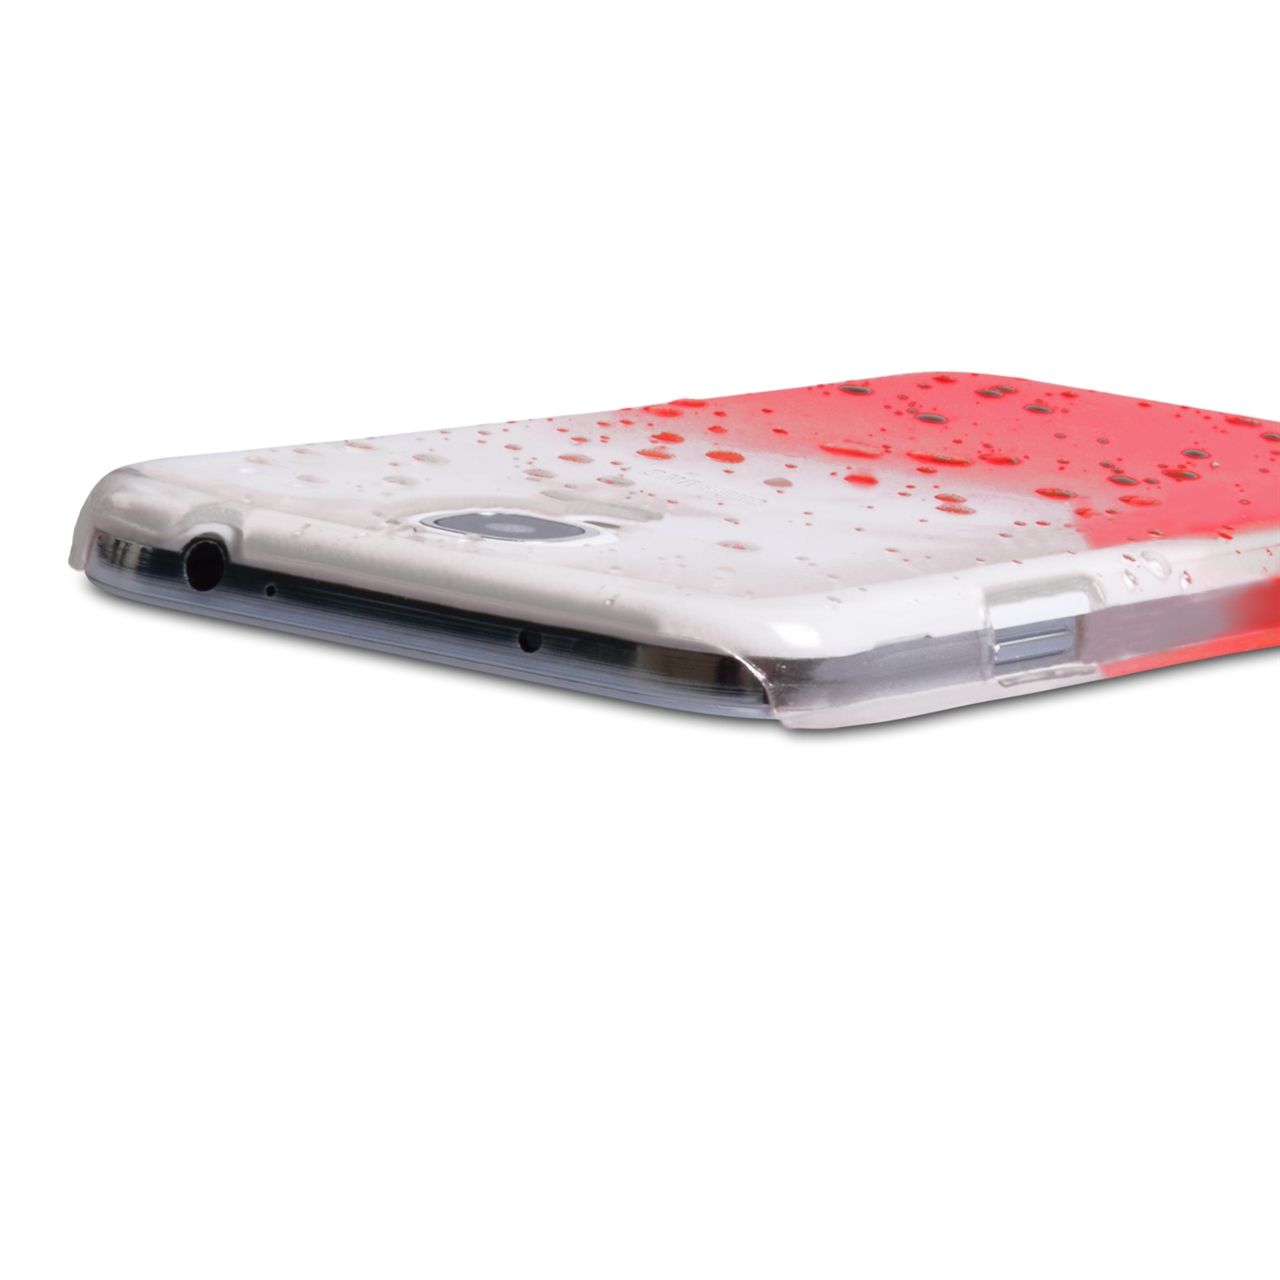 YouSave Accessories Samsung Galaxy S4 Raindrop Hard Case - Red/Clear